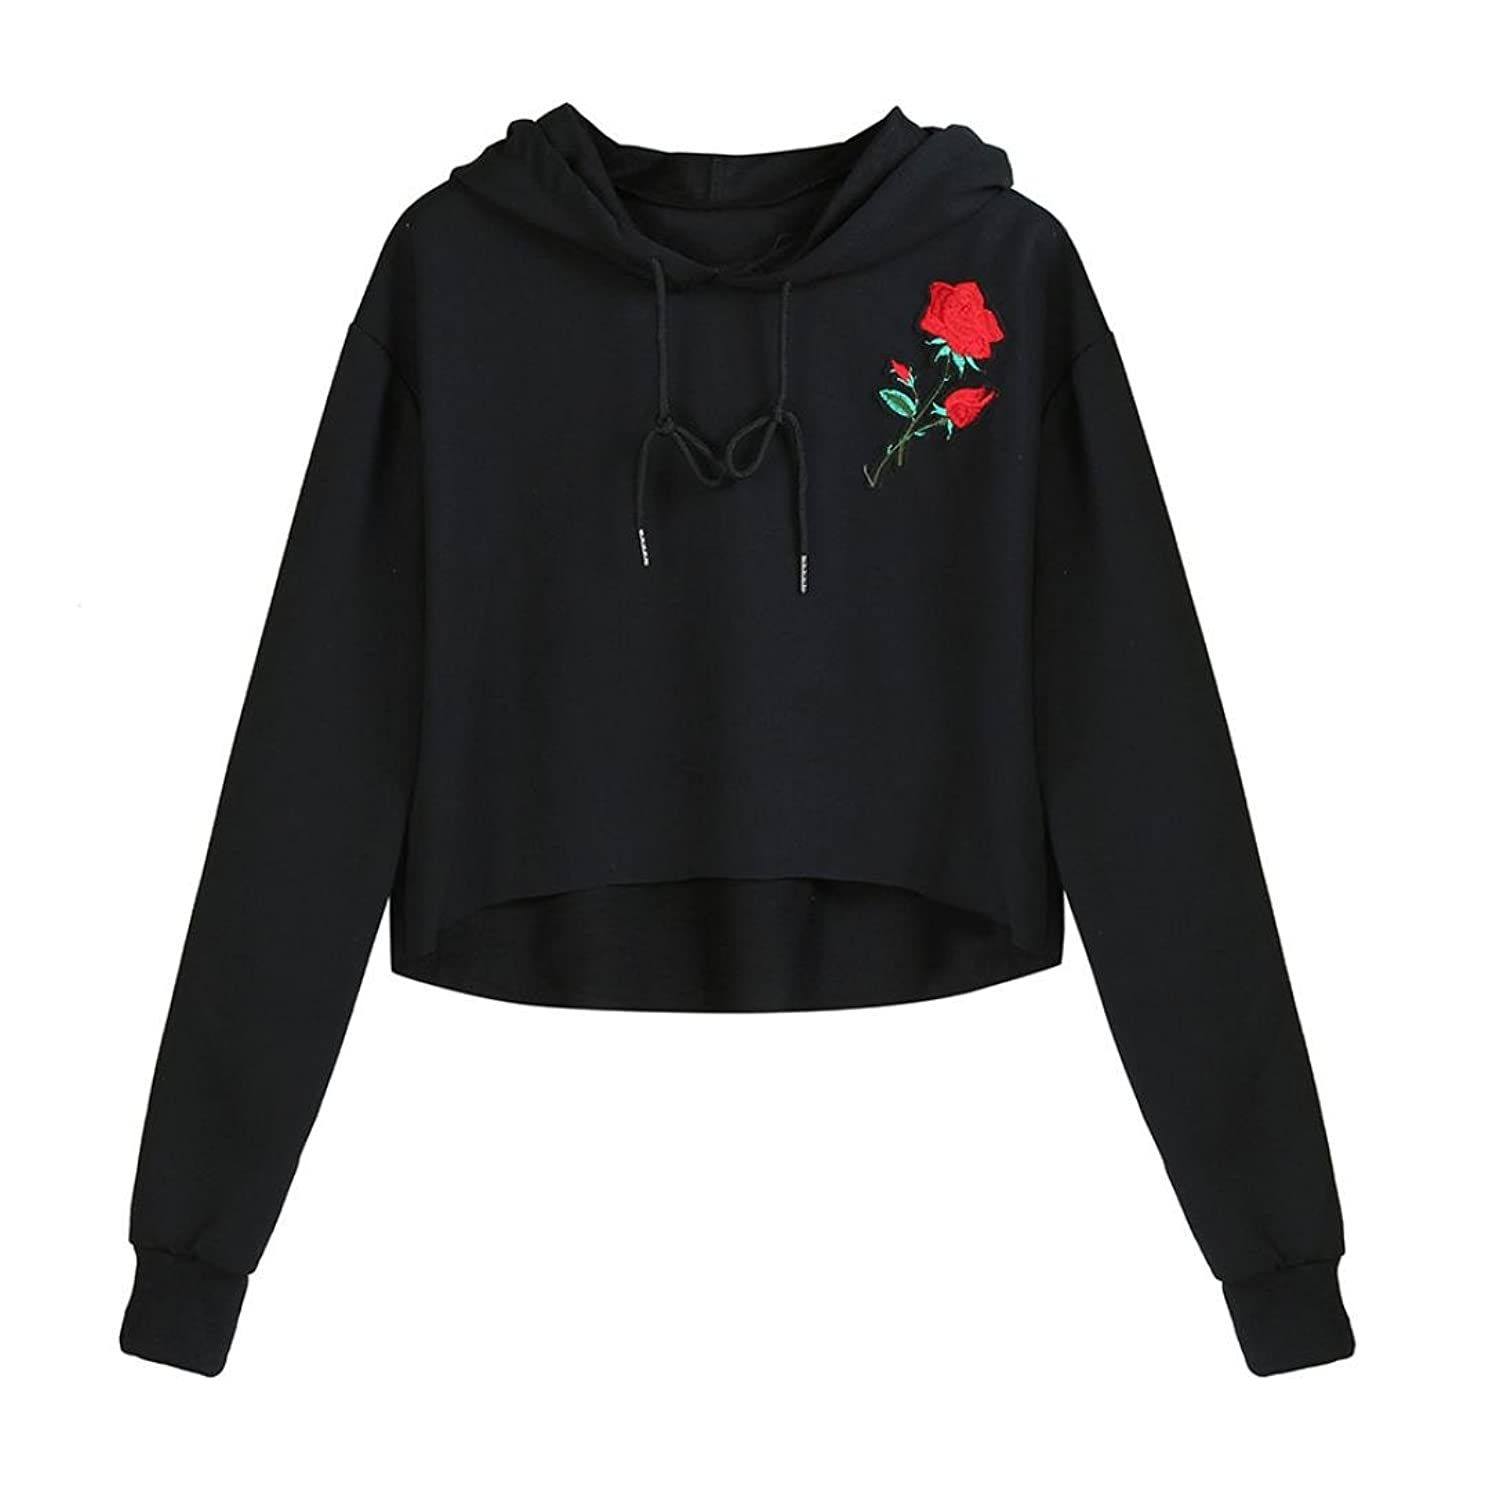 Cropped Hoodies, Ankola Fashion Womens Rose Embroidery Lightweight Sweatshirt Hoodie Pullover Causal Crop Top at Amazon Womens Clothing store: